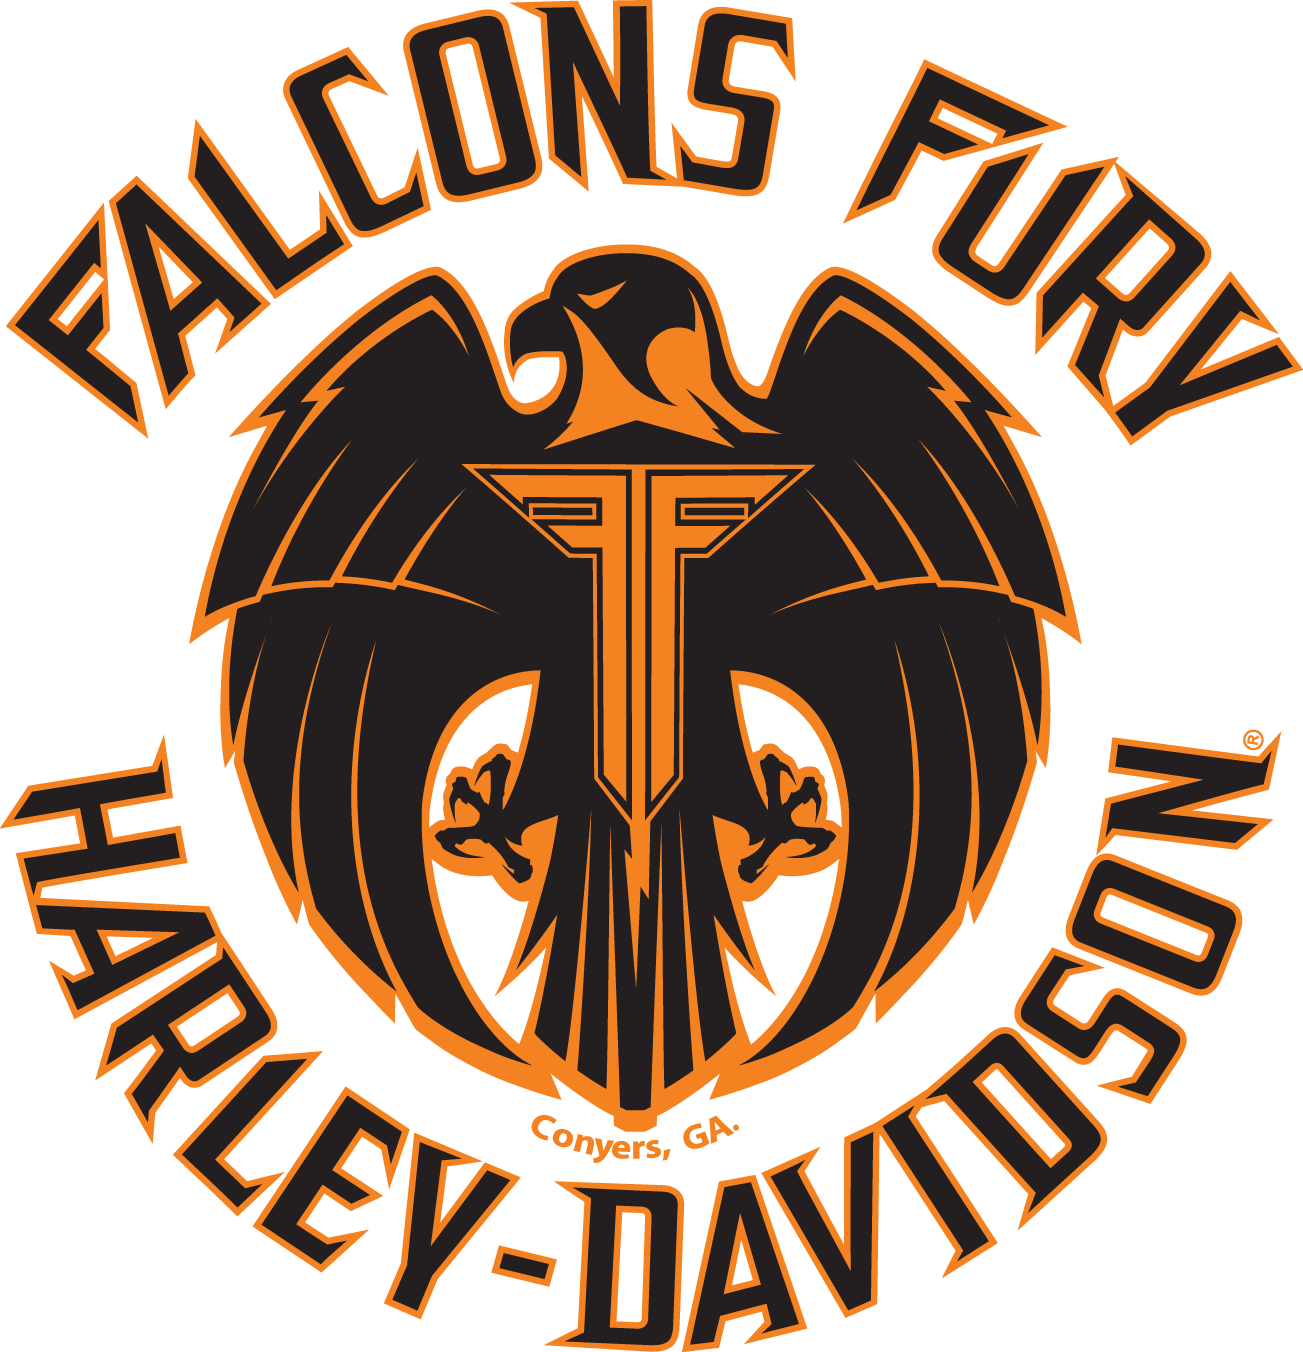 NFC #118 SATURDAY, MAY 11@ FALCONS FURY HARLEY-DAVIDSONCONYERS -